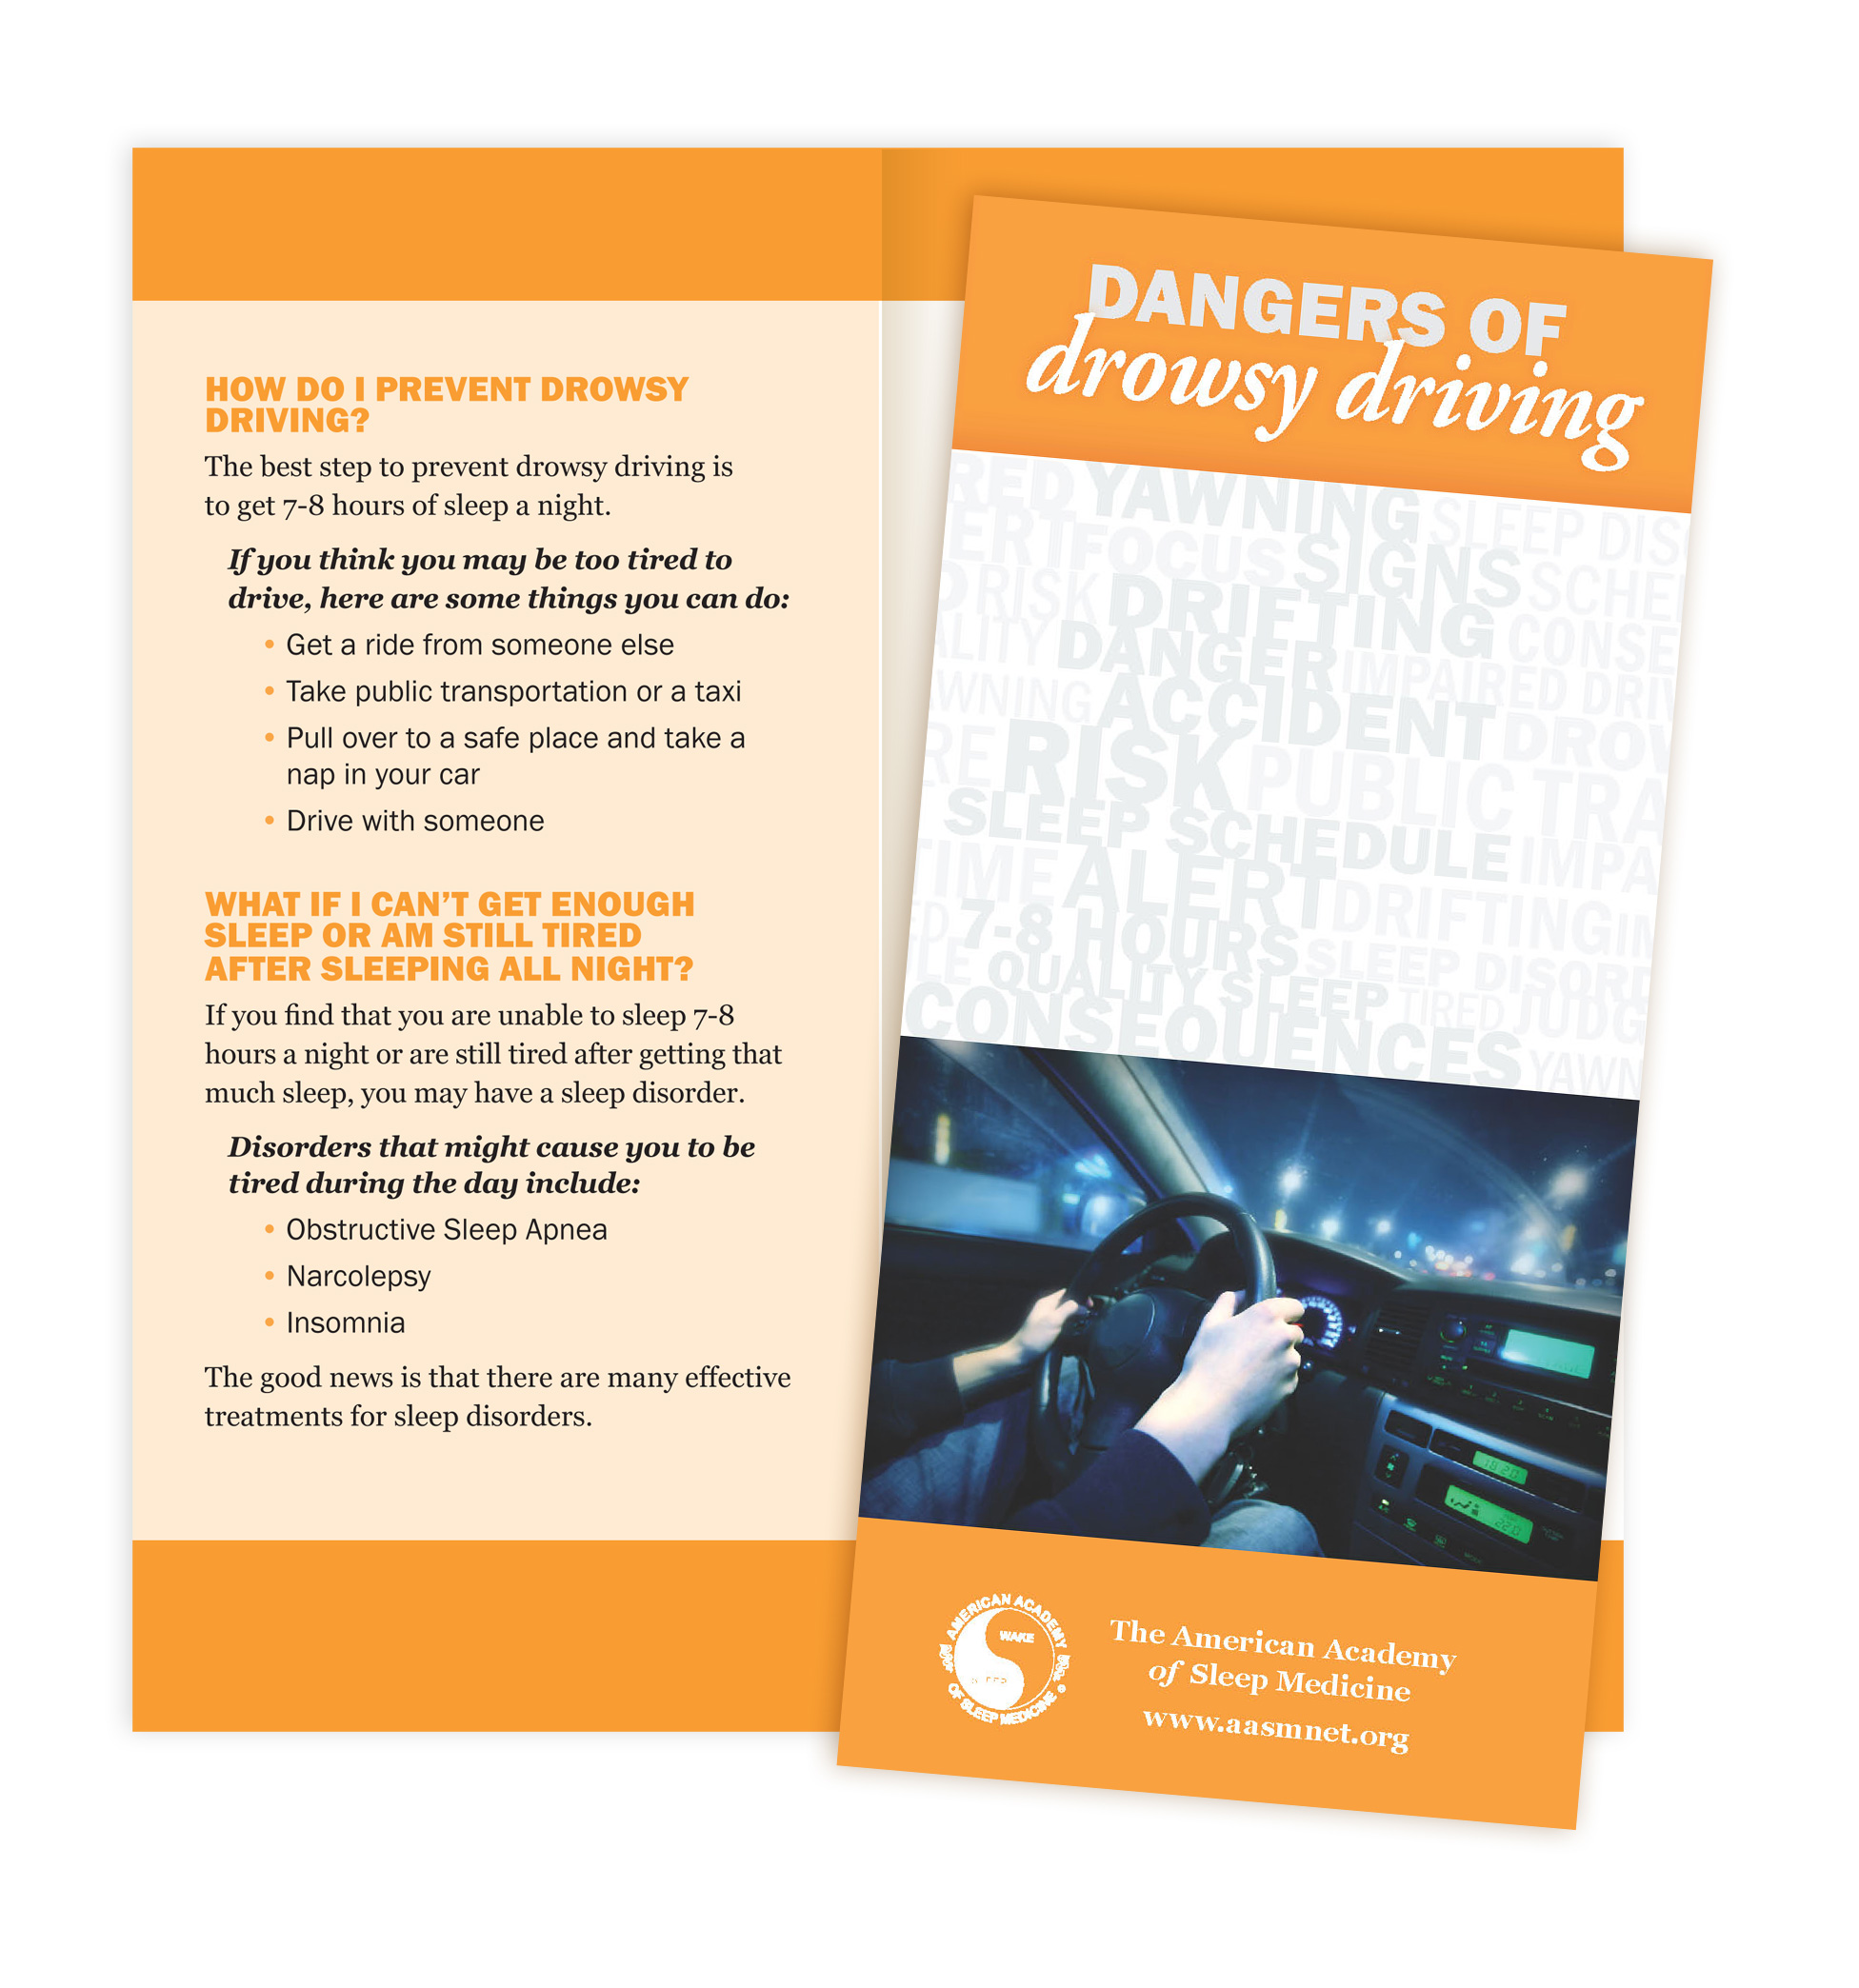 Dangers of Drowsy Driving Patient Education Brochures (50 brochures)